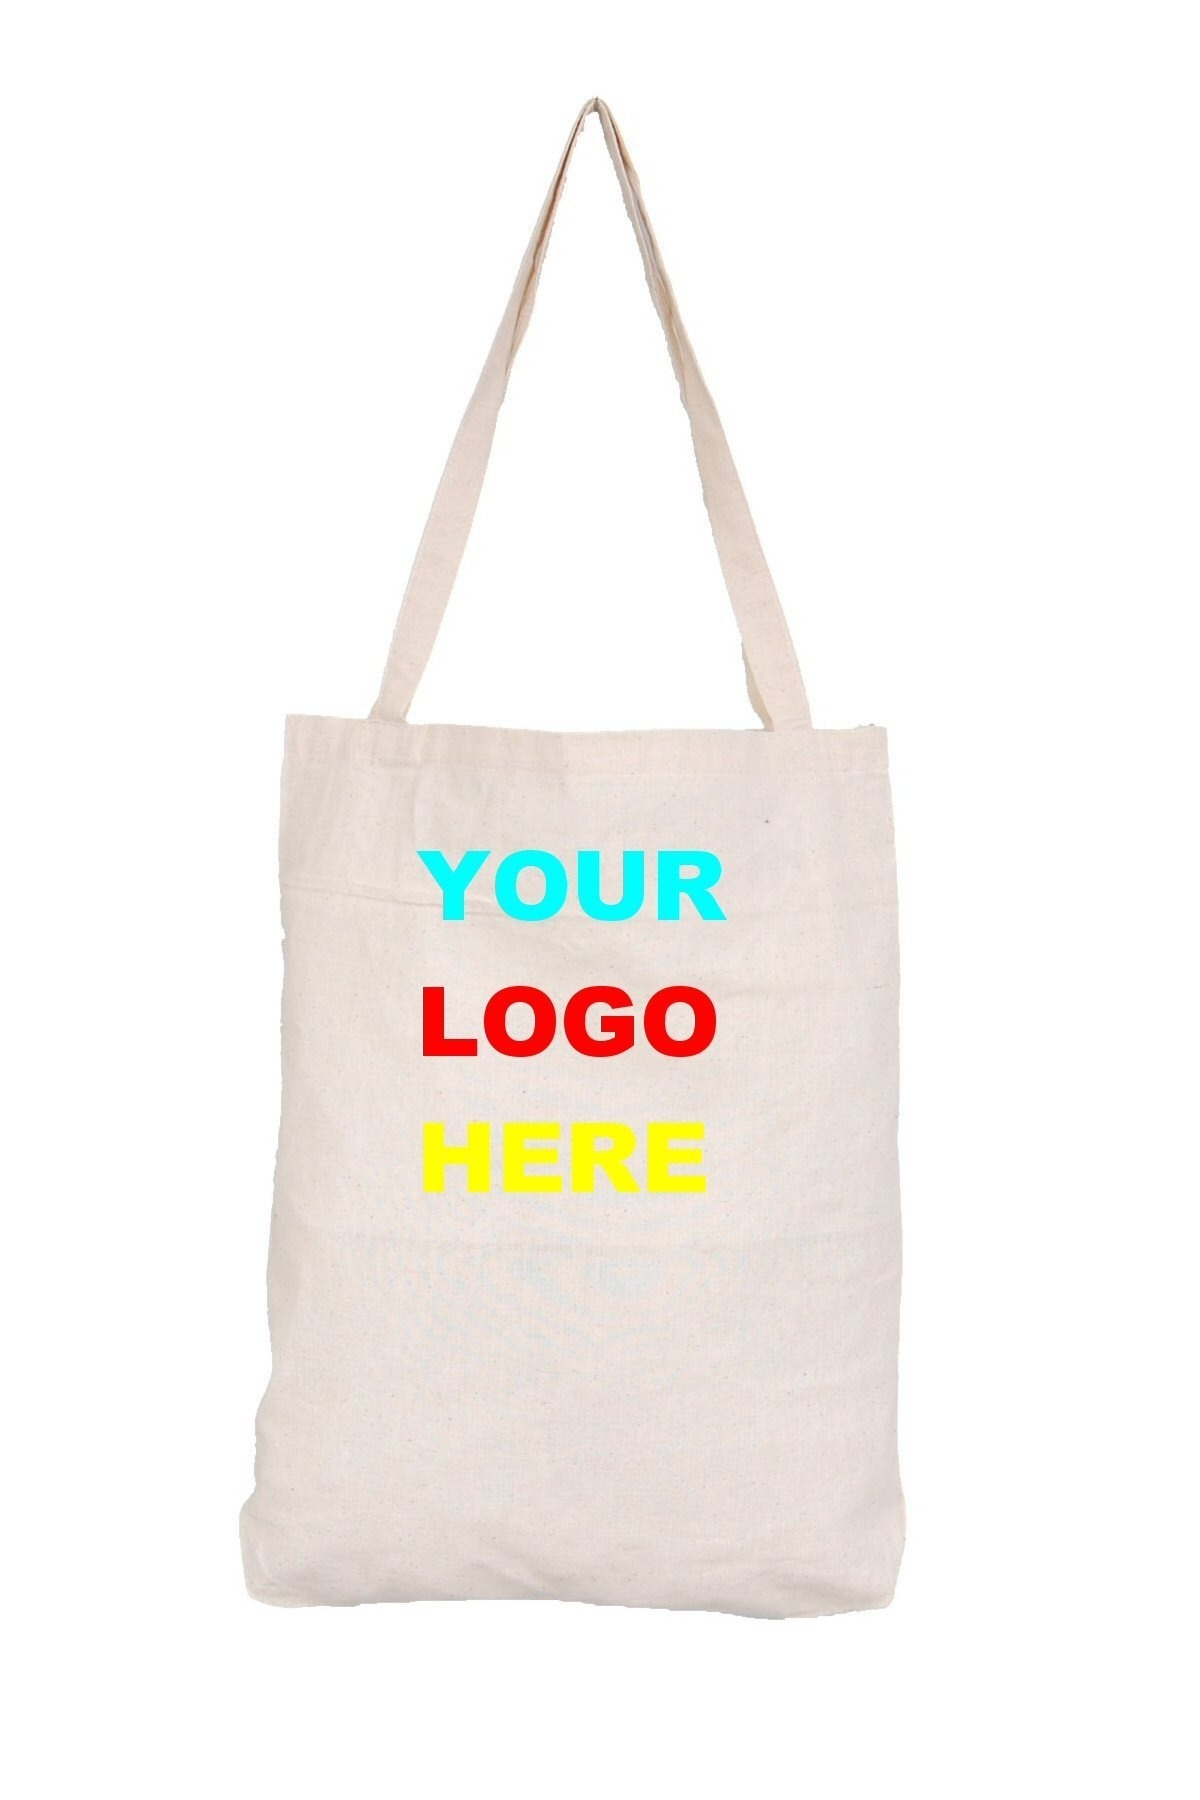 CUSTOMIZED BAGS BS-ESB02 - Oriente Import S.r.l.